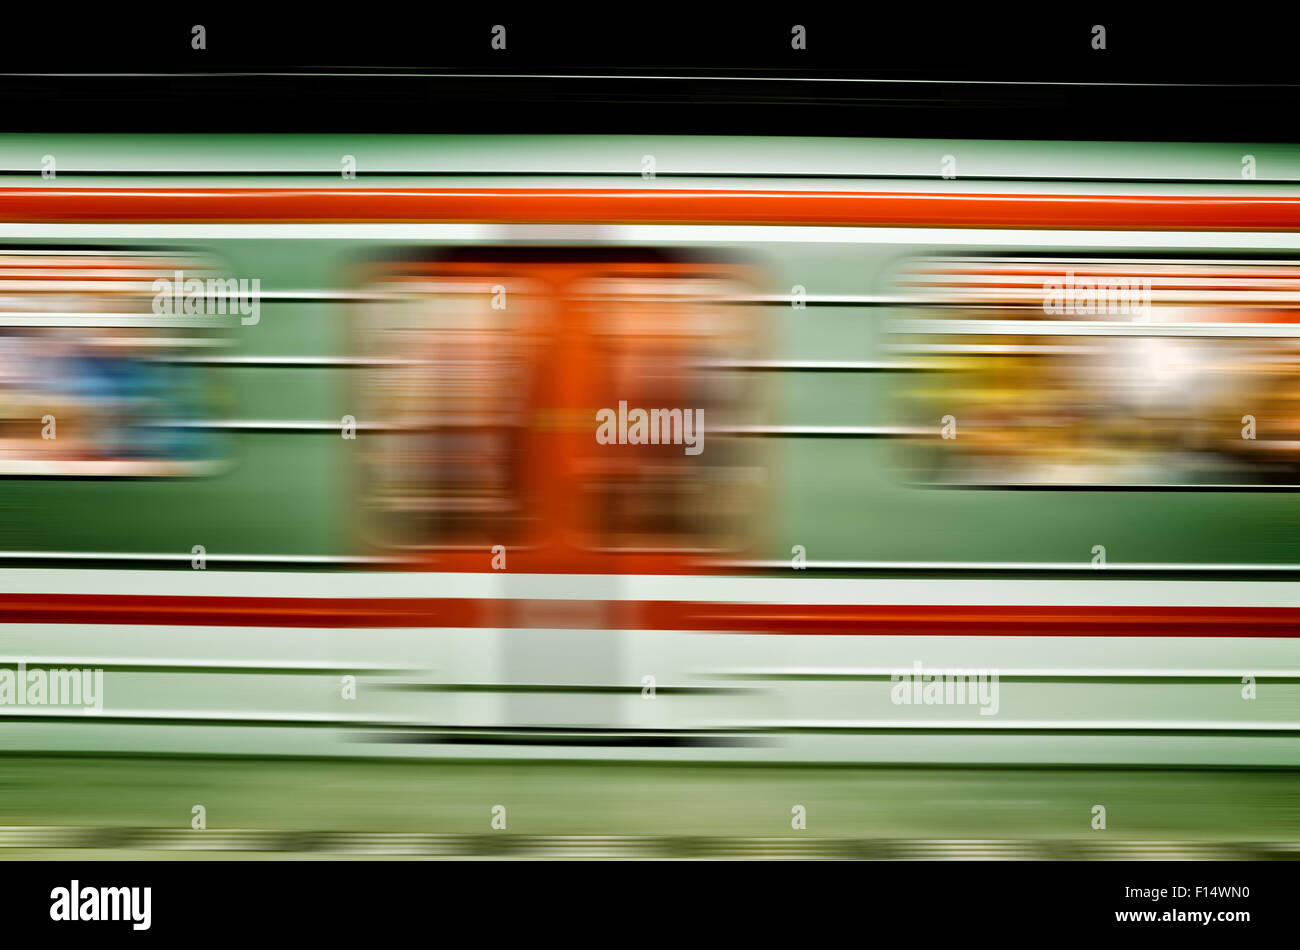 subway train in motion, blurred - Stock Image